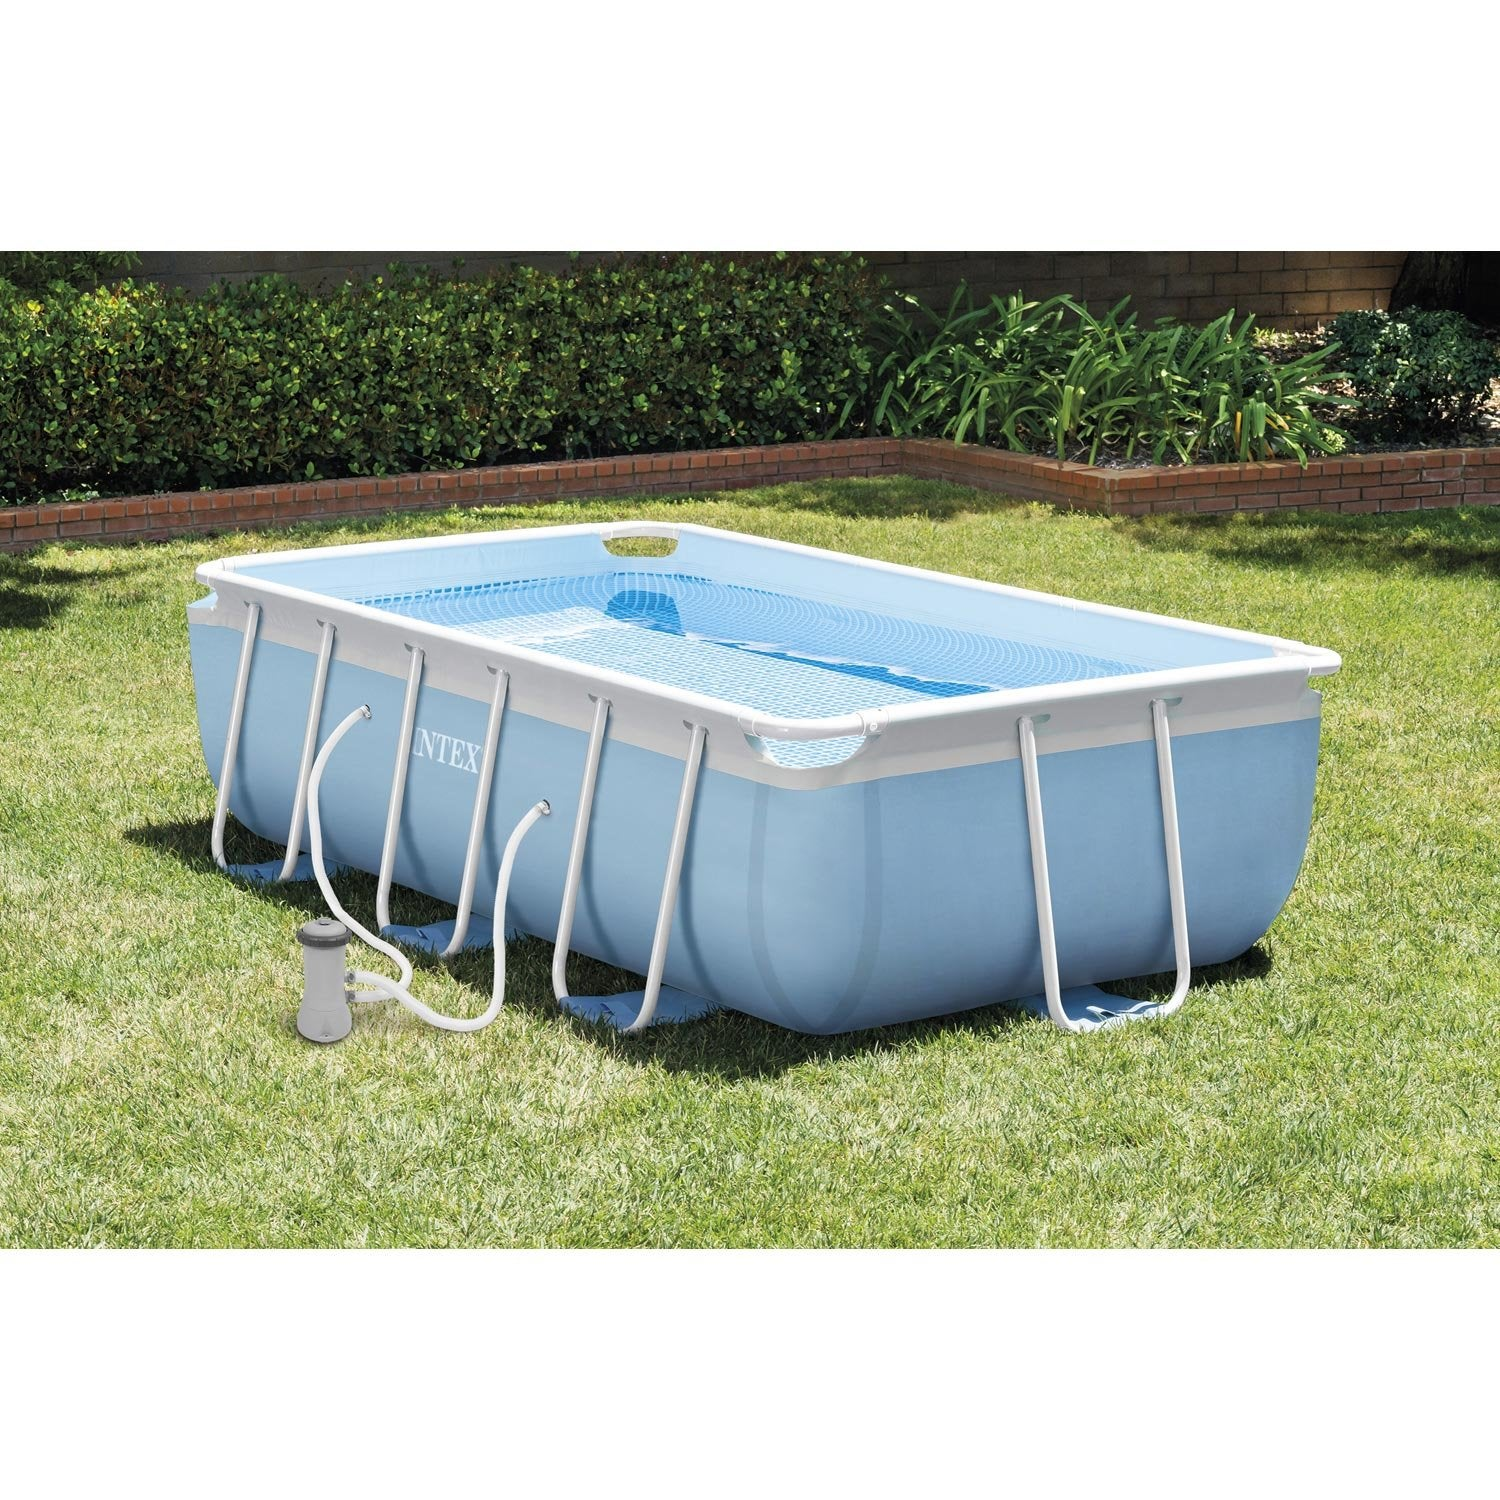 Piscine hors sol autoportante tubulaire intex l 3 4 x l 2 for Piscine sol